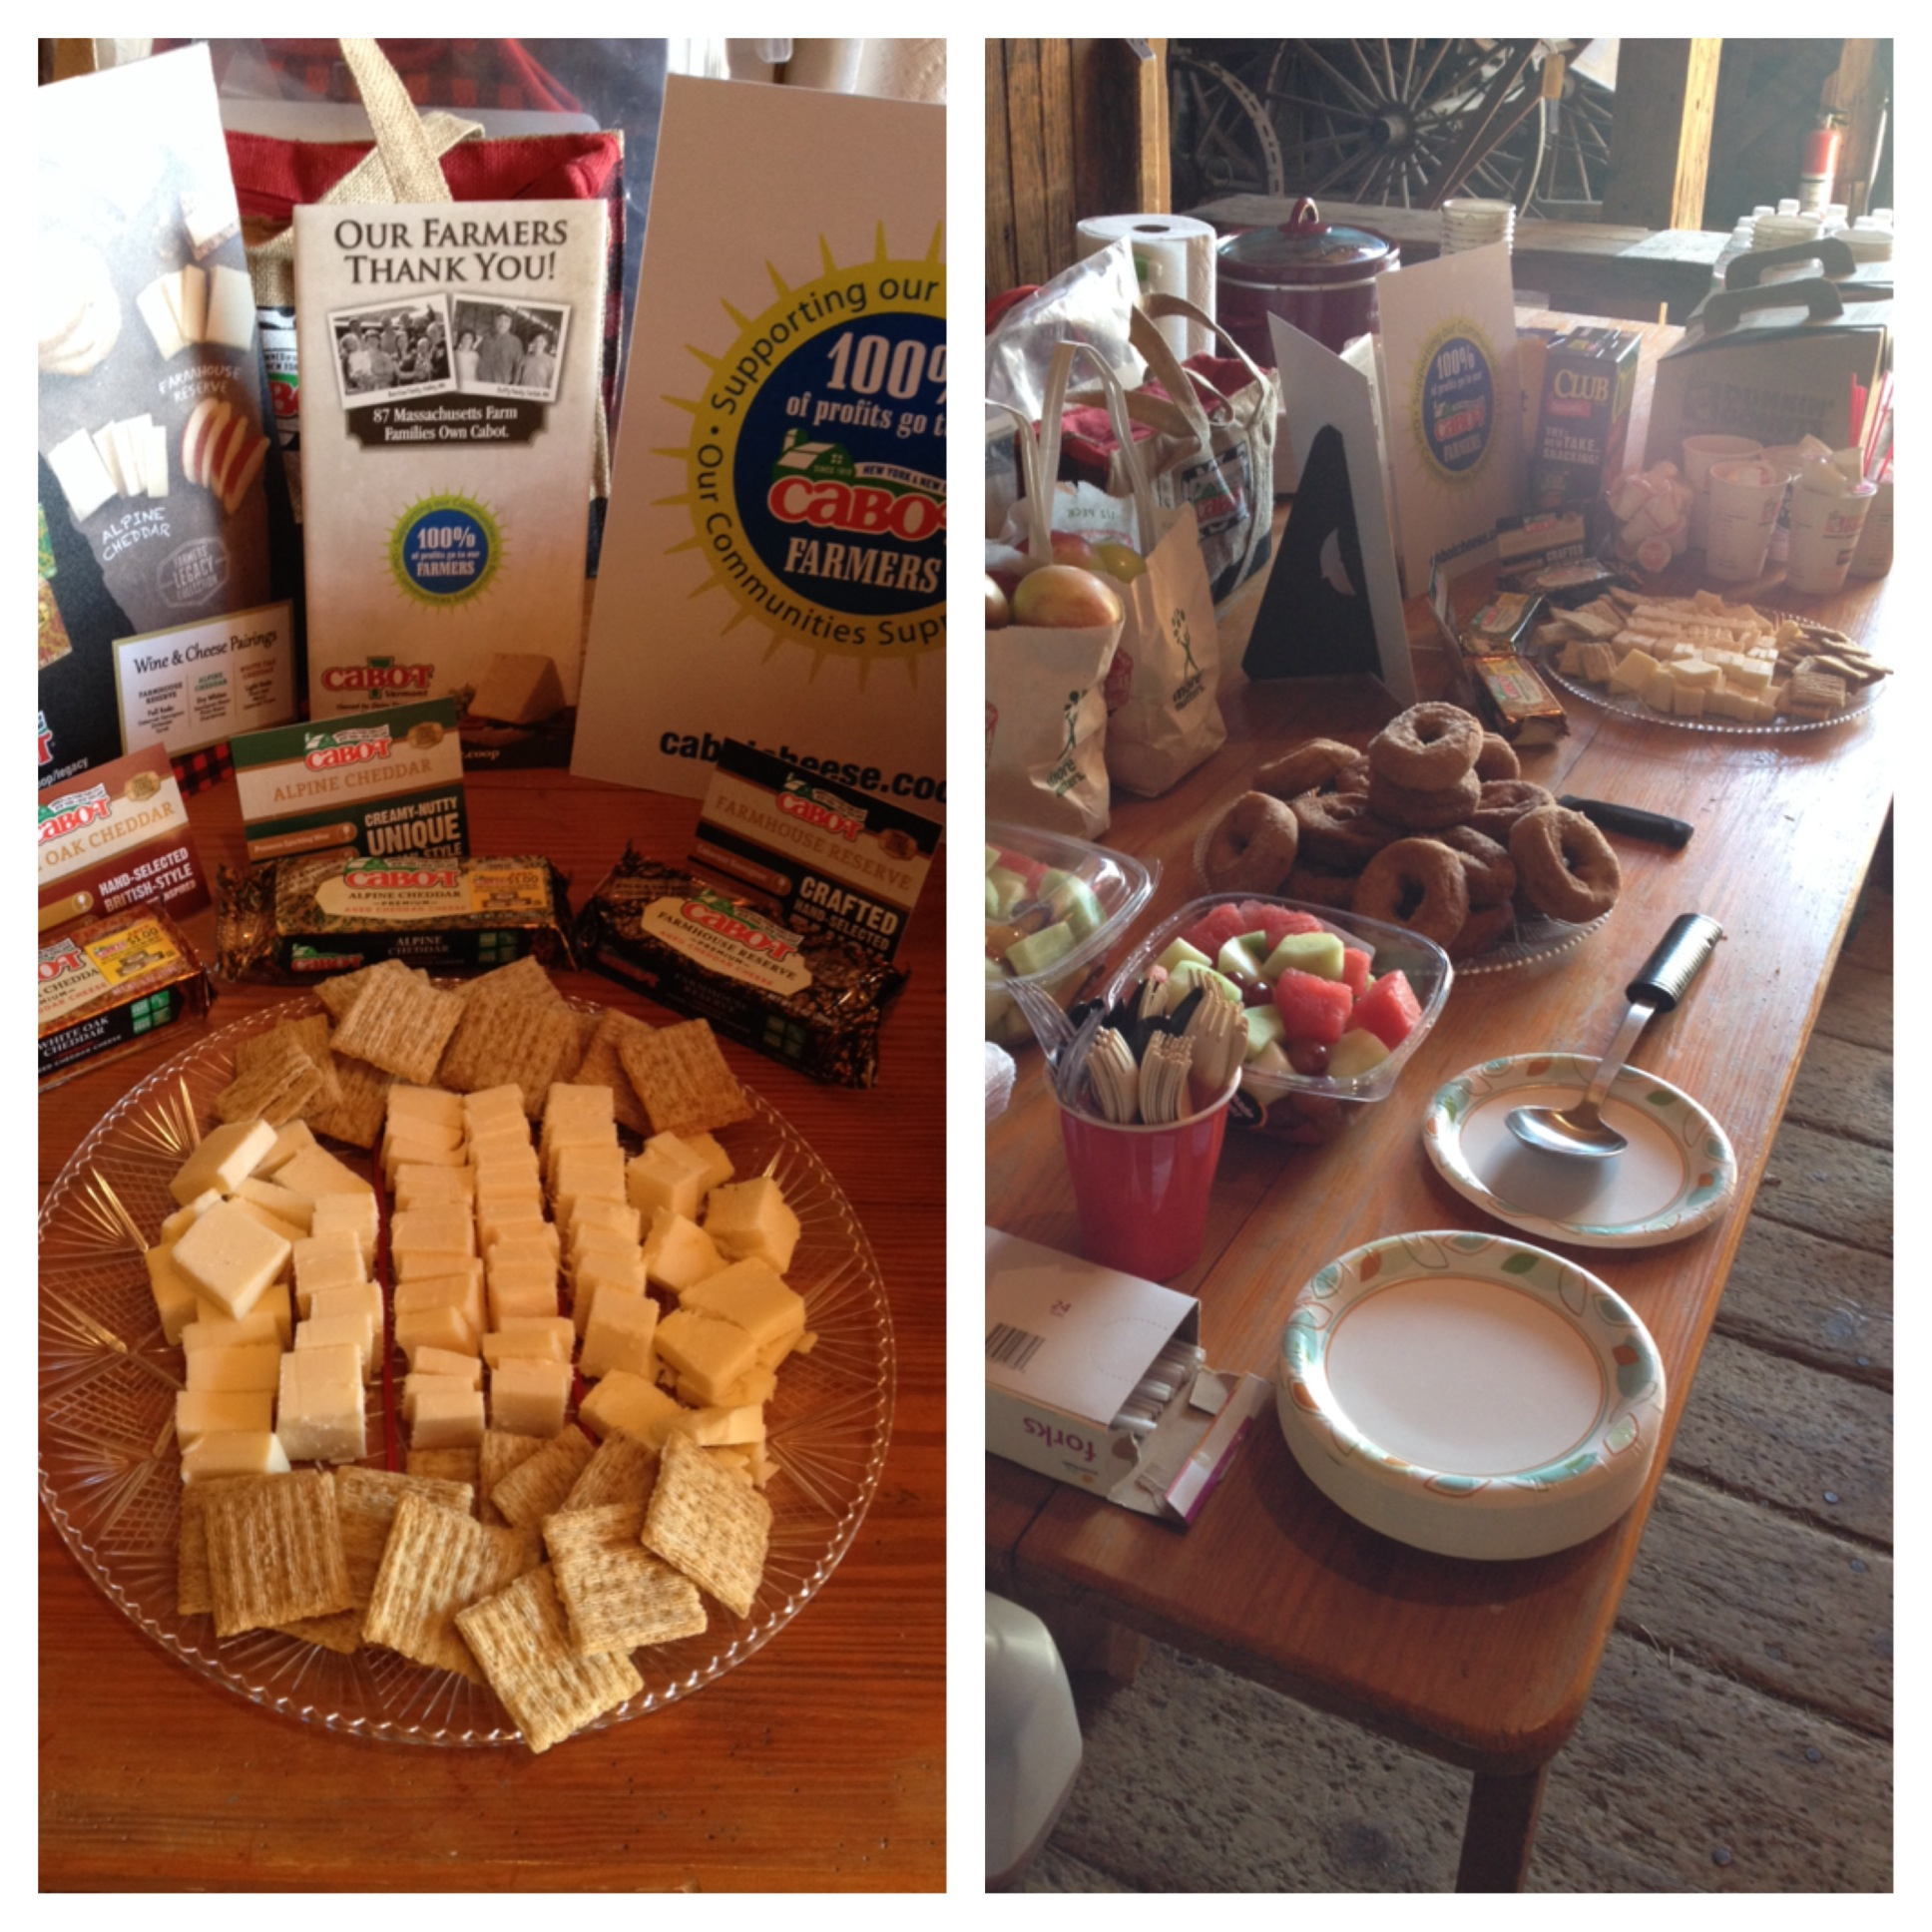 Snack table photo collage